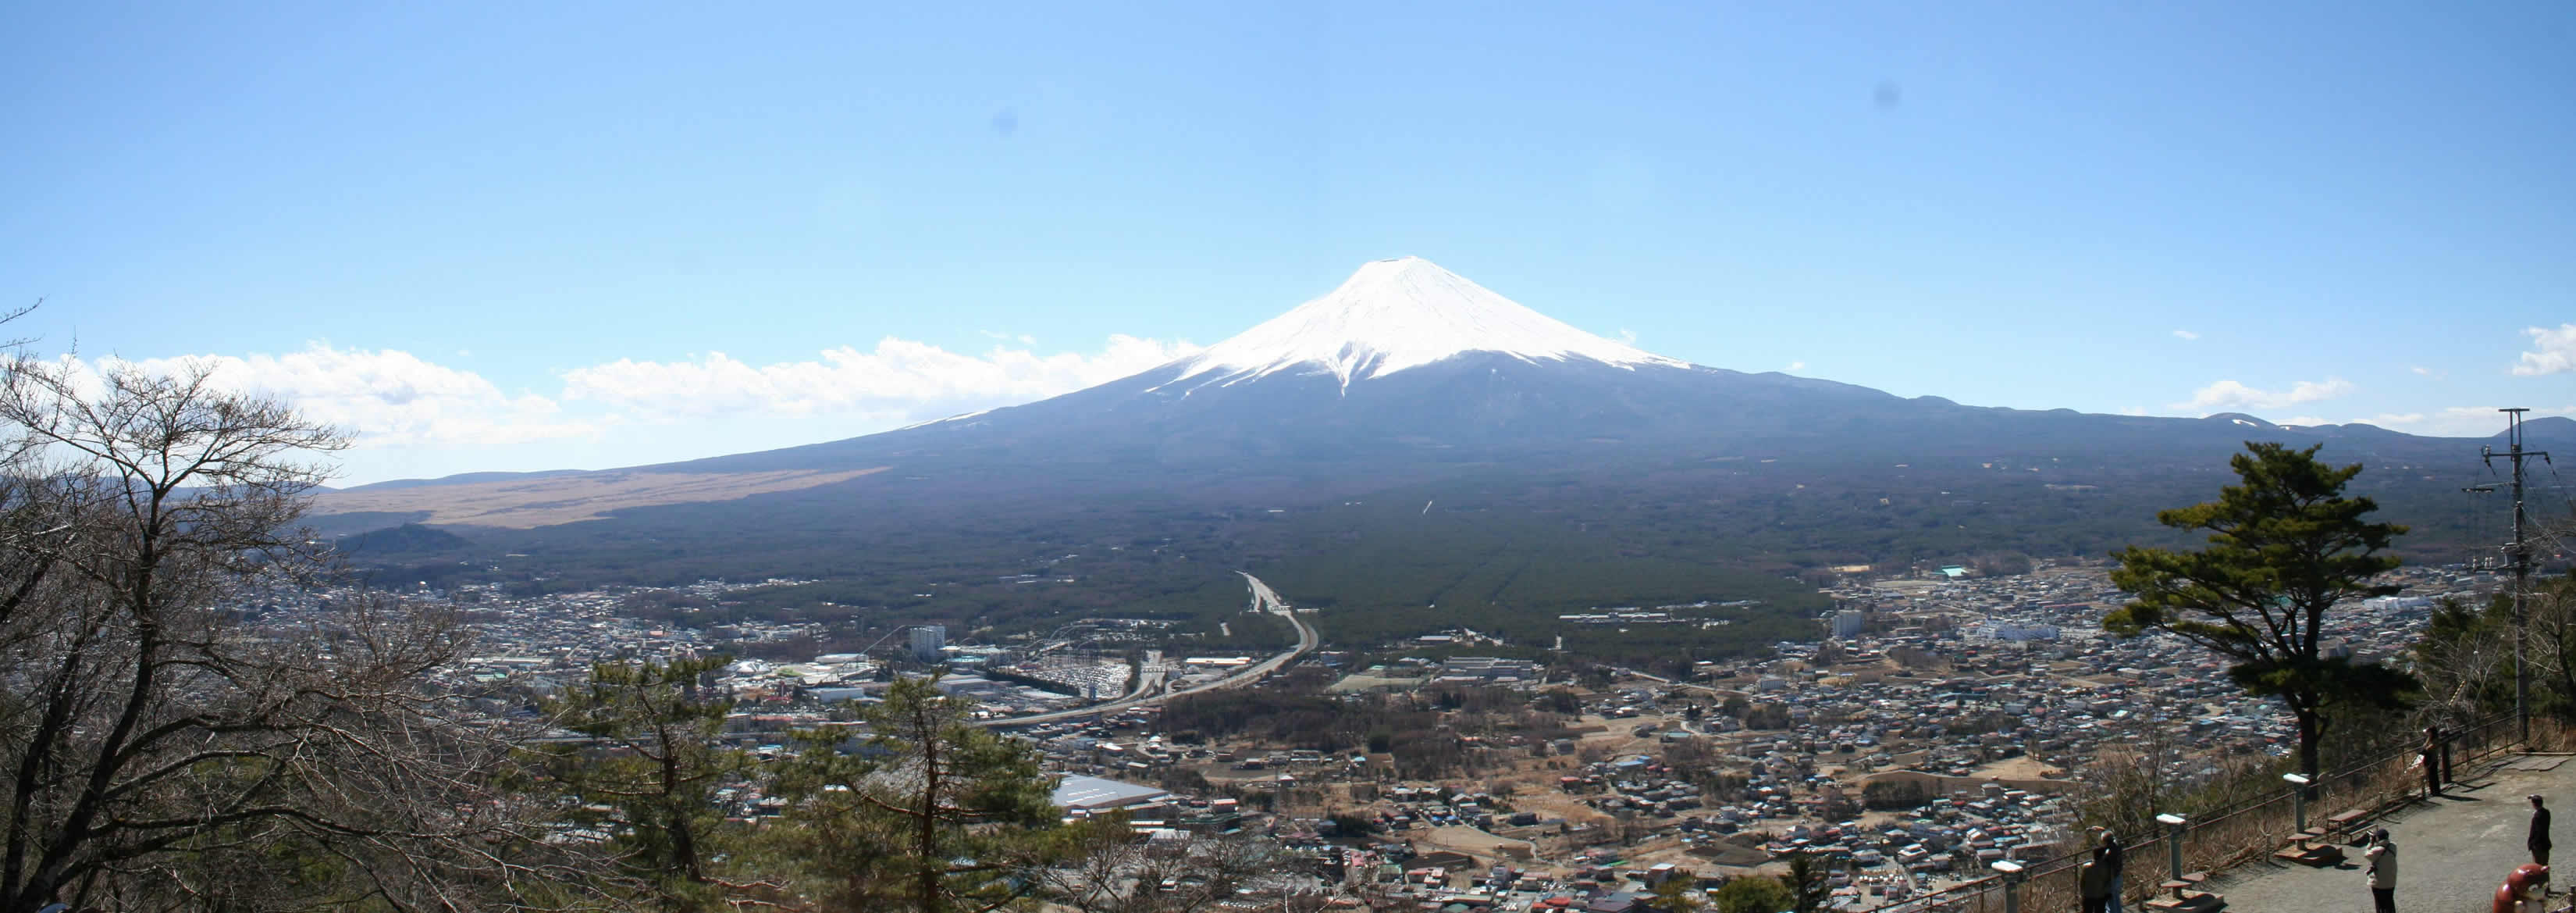 Image 5. Mount Fujiyama from Mount Tanjo on a clear day in mid October [Honshu Island, Japan]. Photo by Amarpreet Singh.